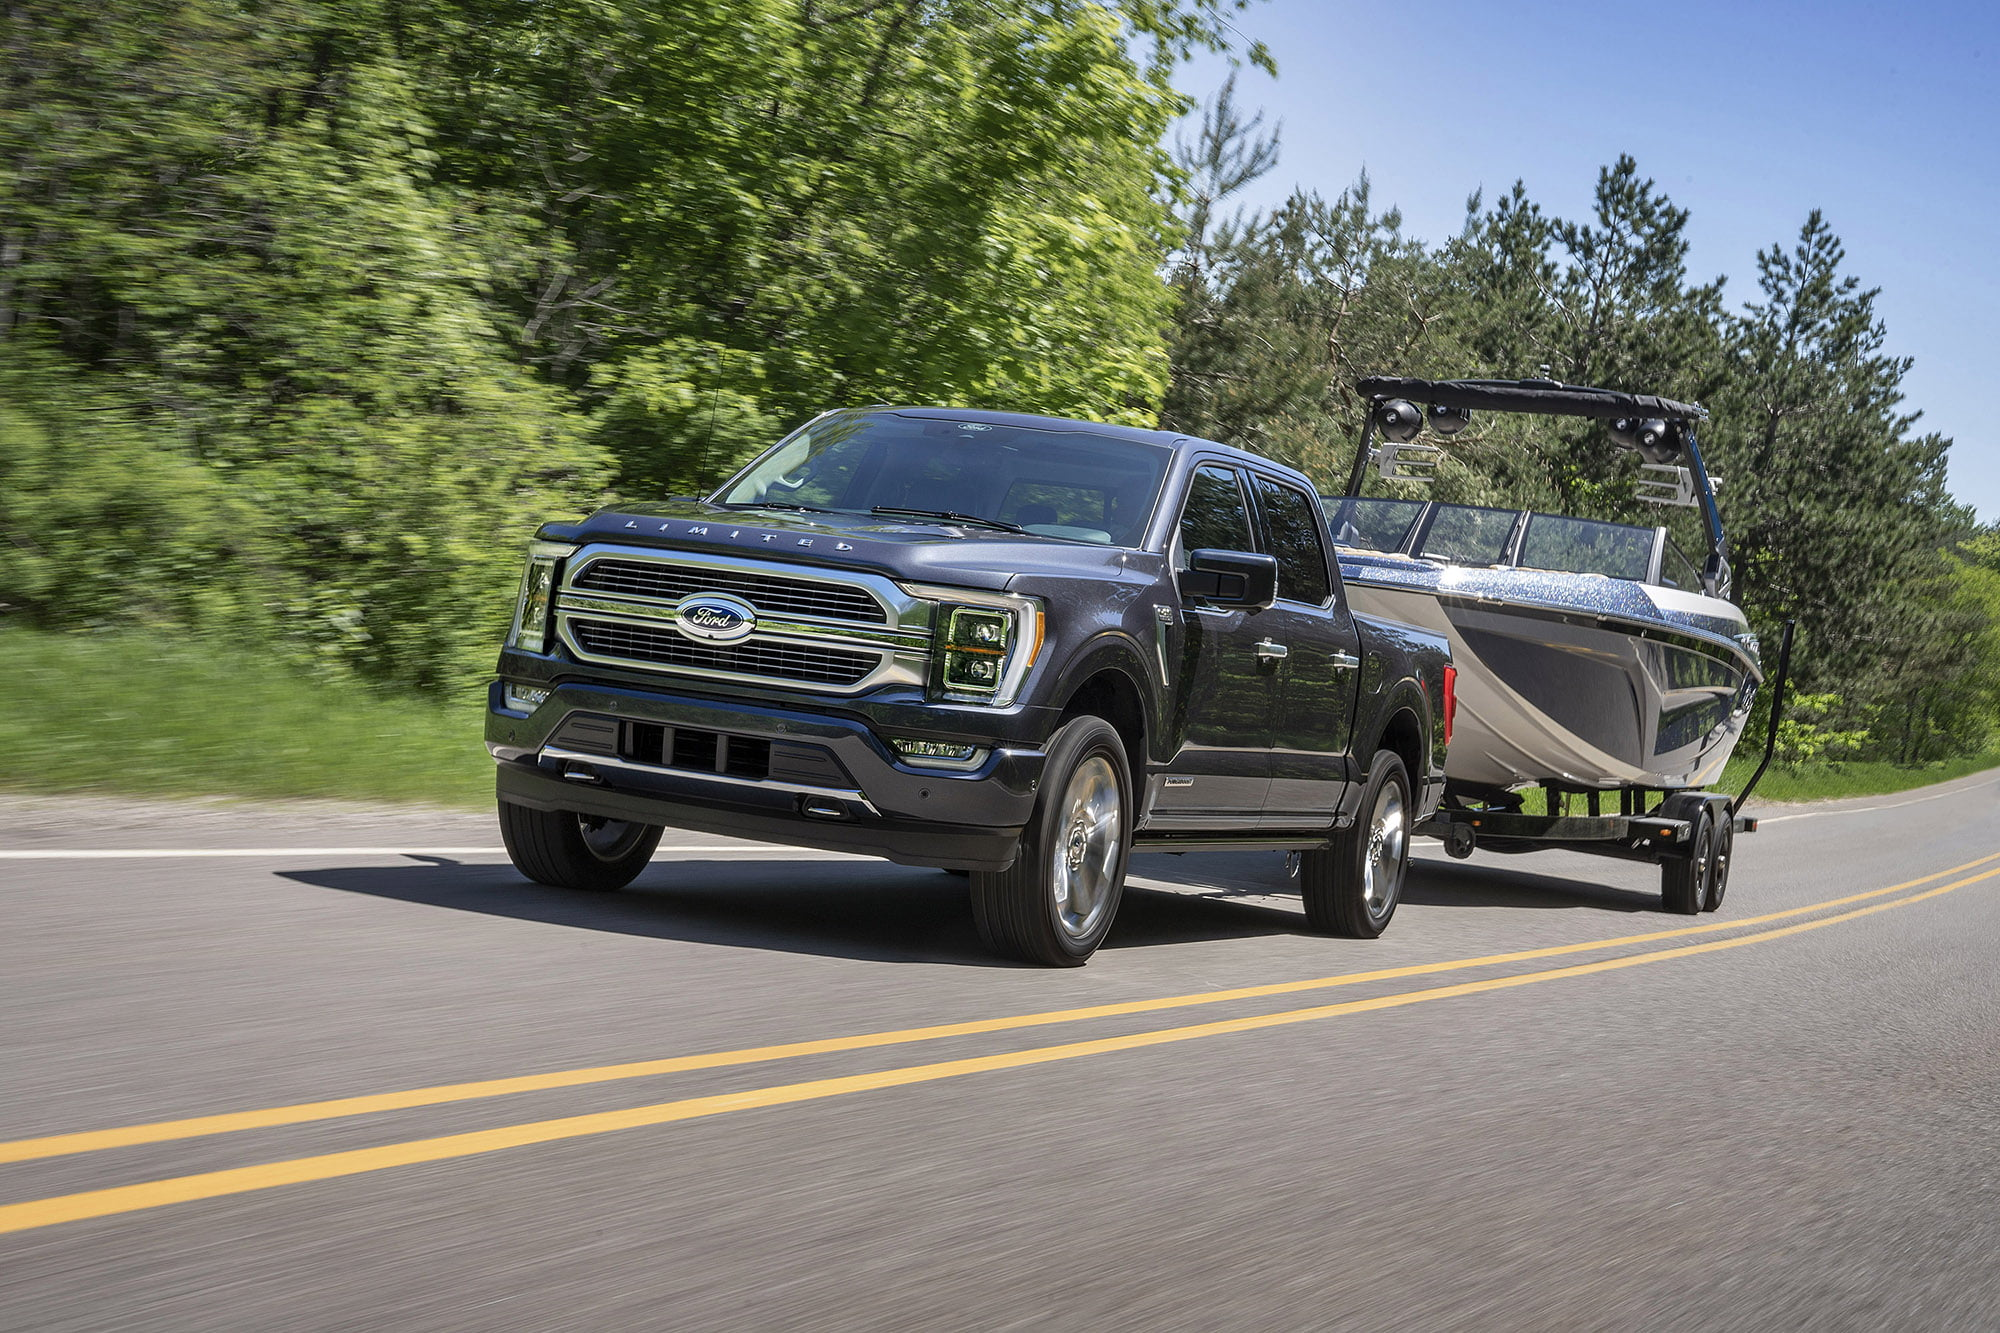 Overview Of The New 2021 Ford F-150